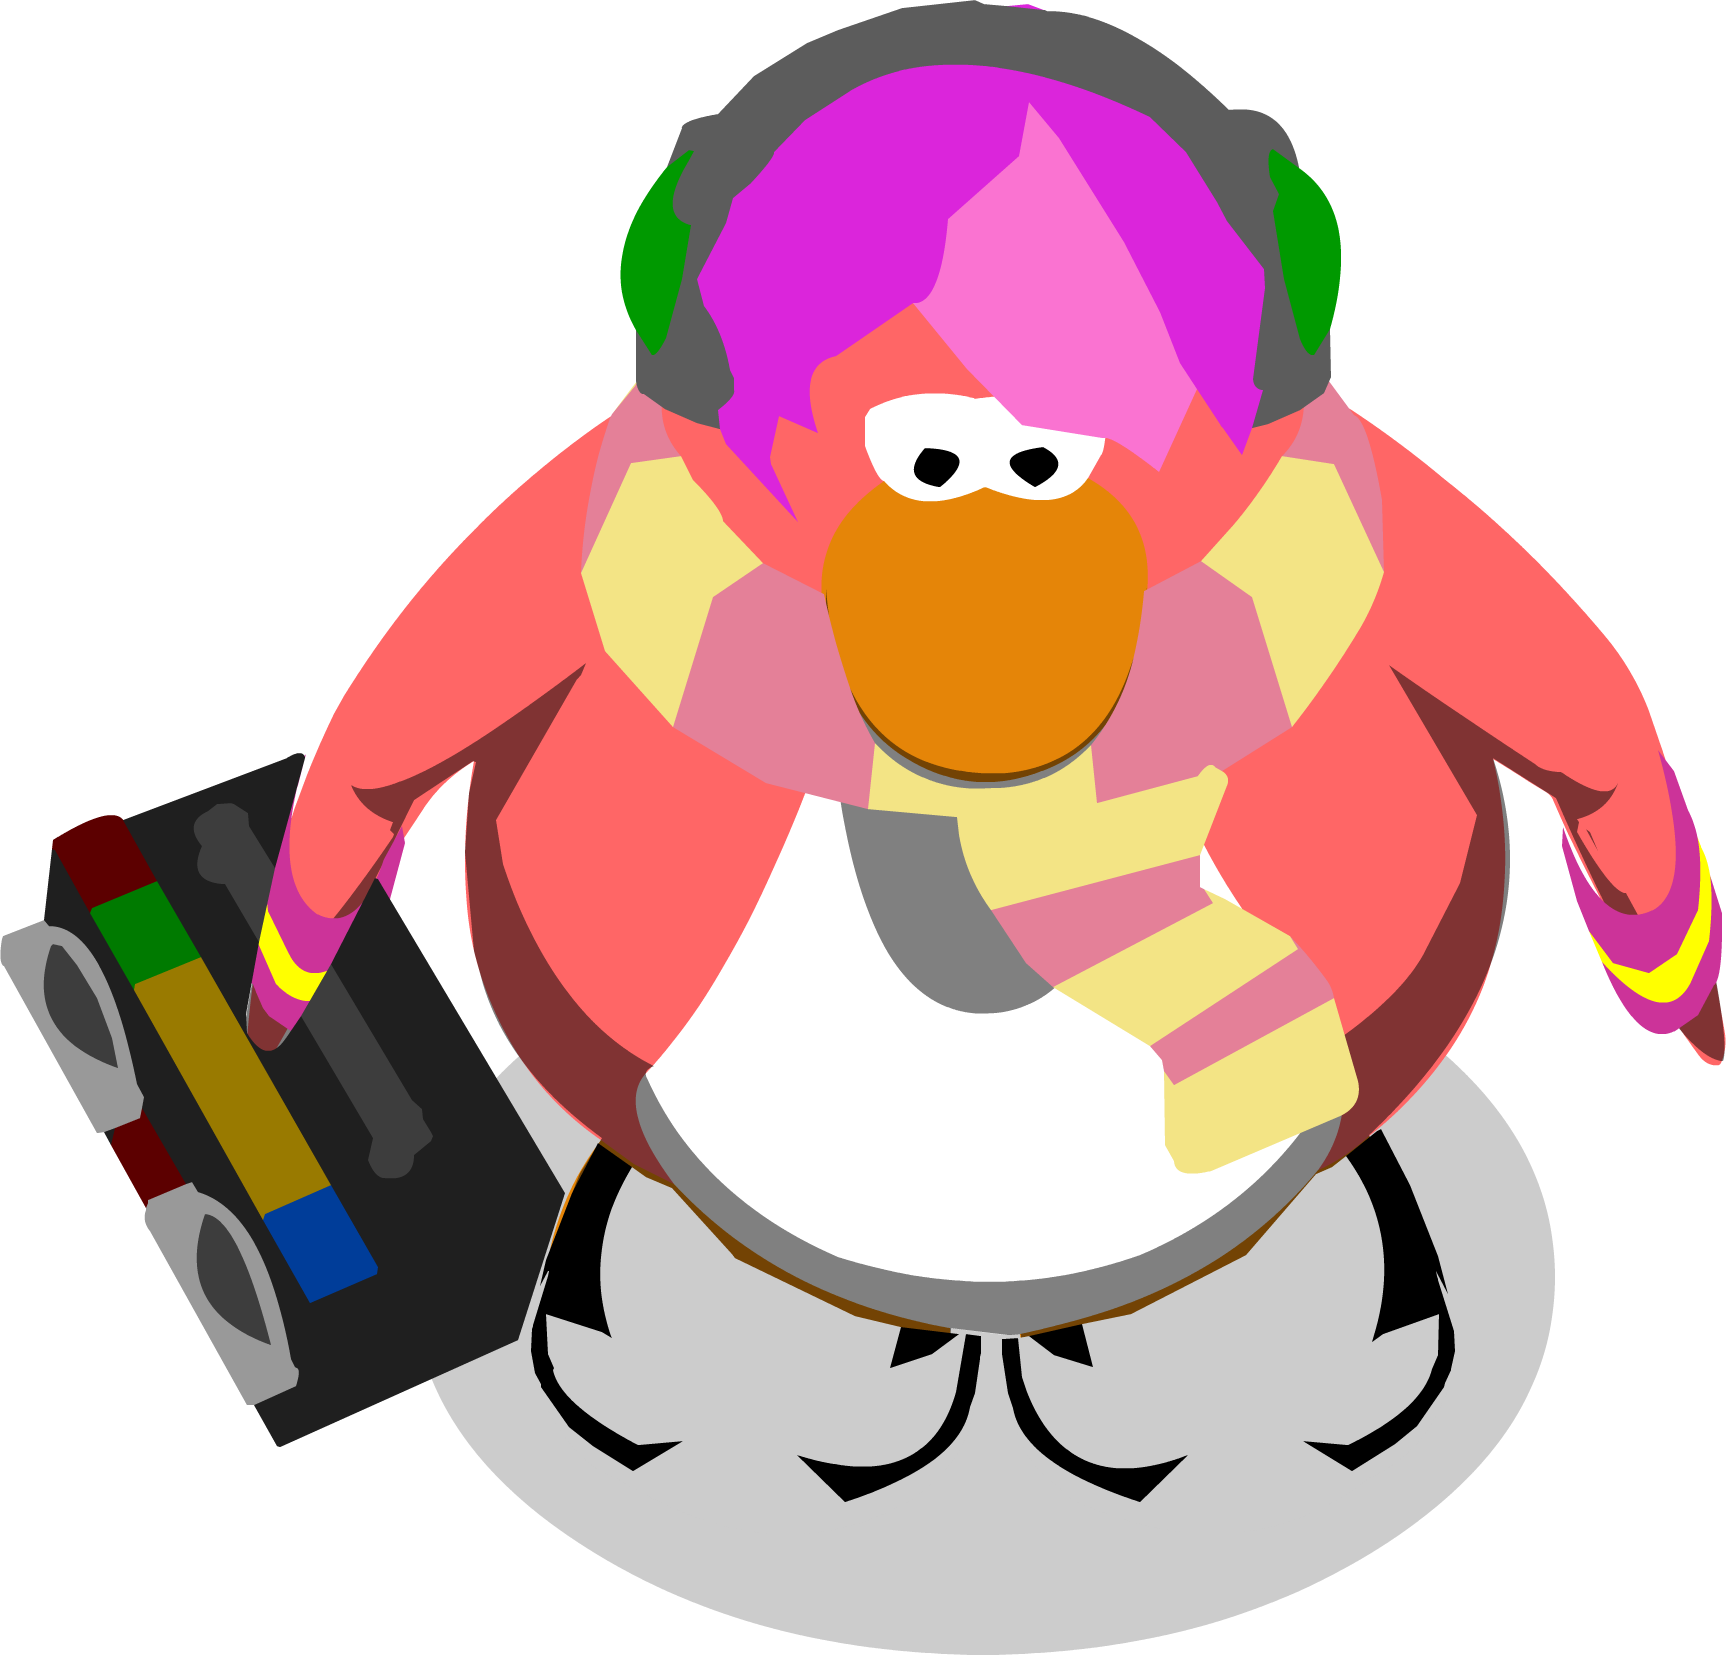 File:Cadence With Boombox In-game.png